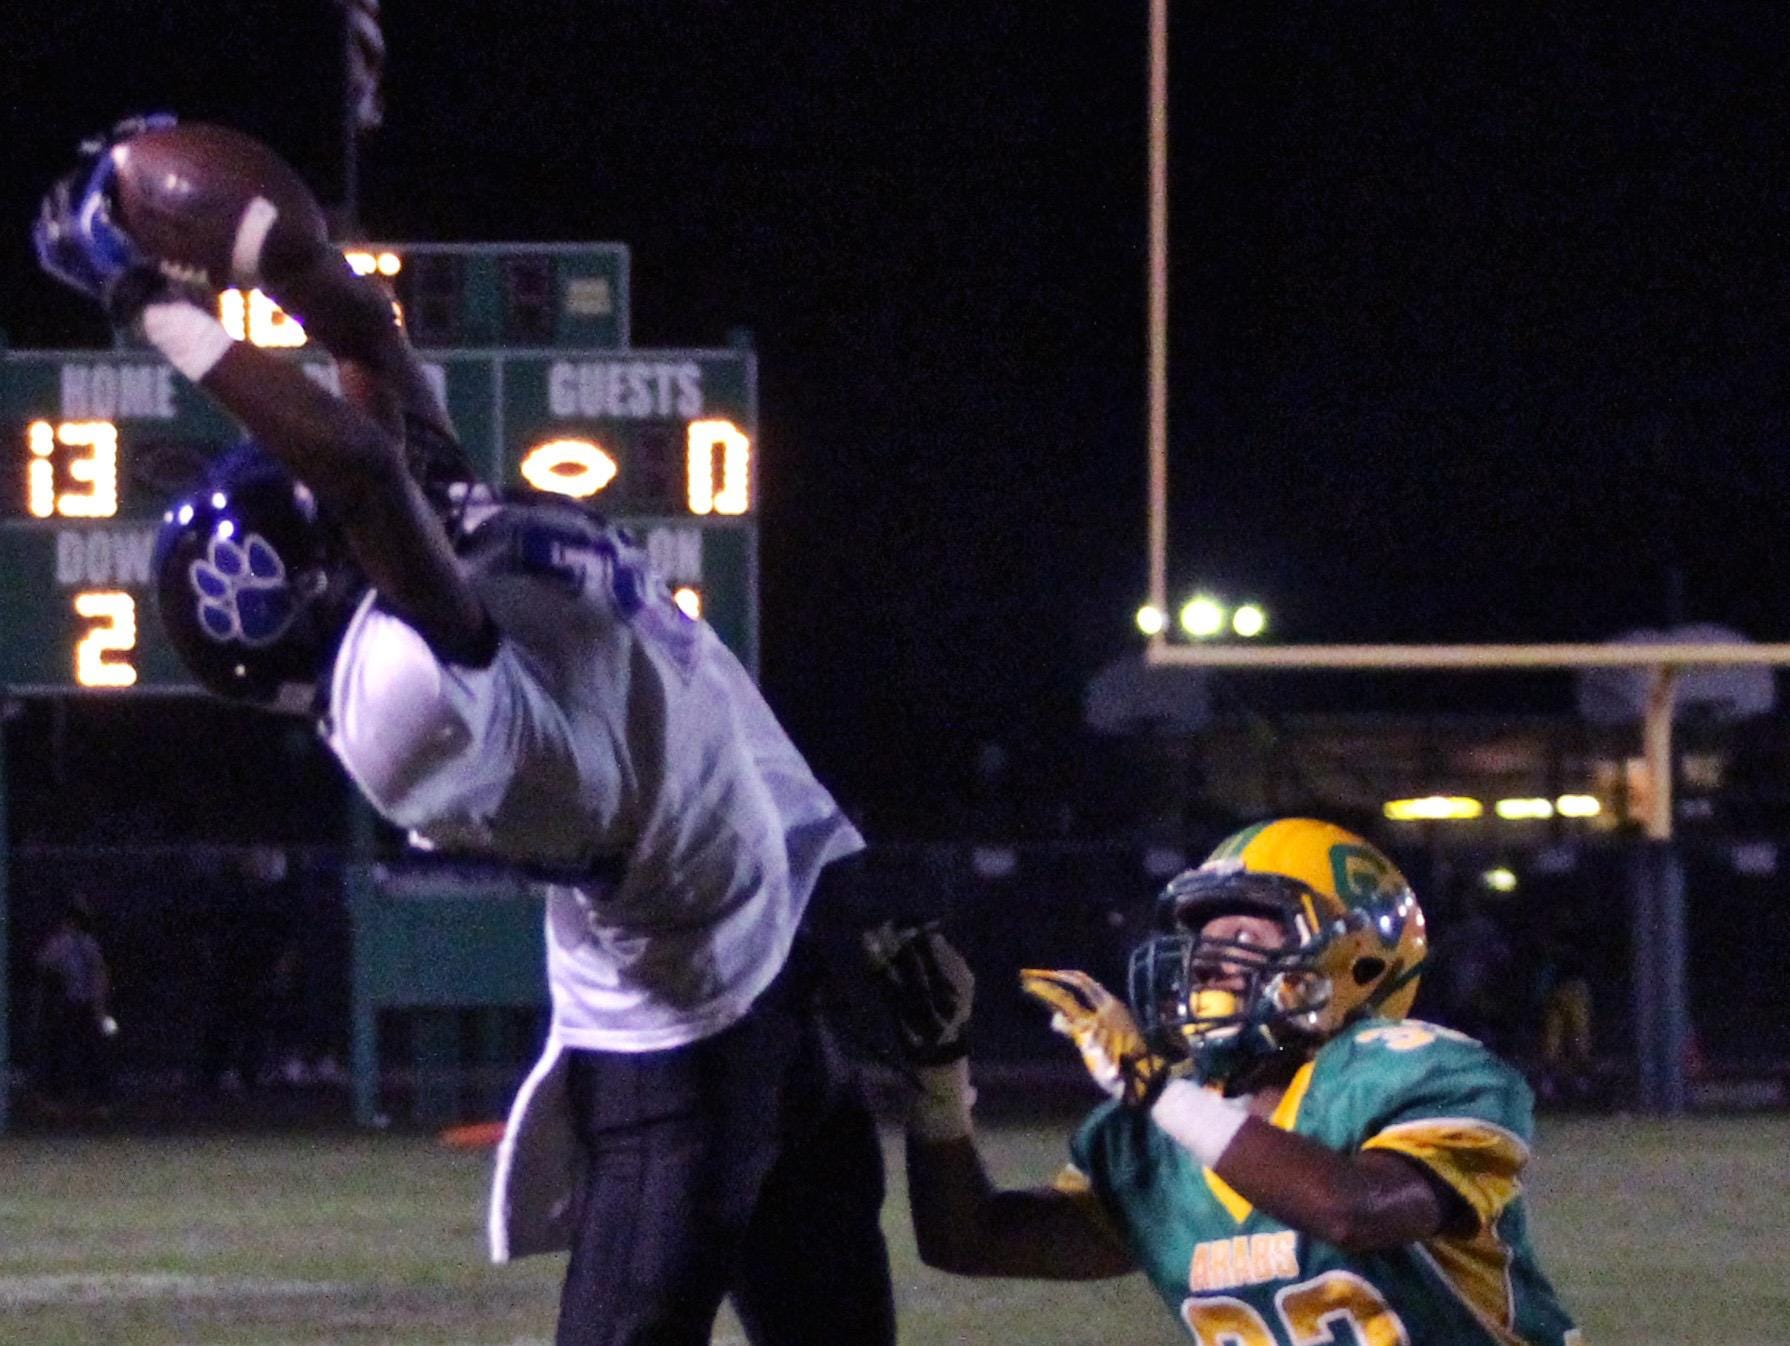 Lions' James Green III (24) catches a pass during an away match with the Arabs on Friday.